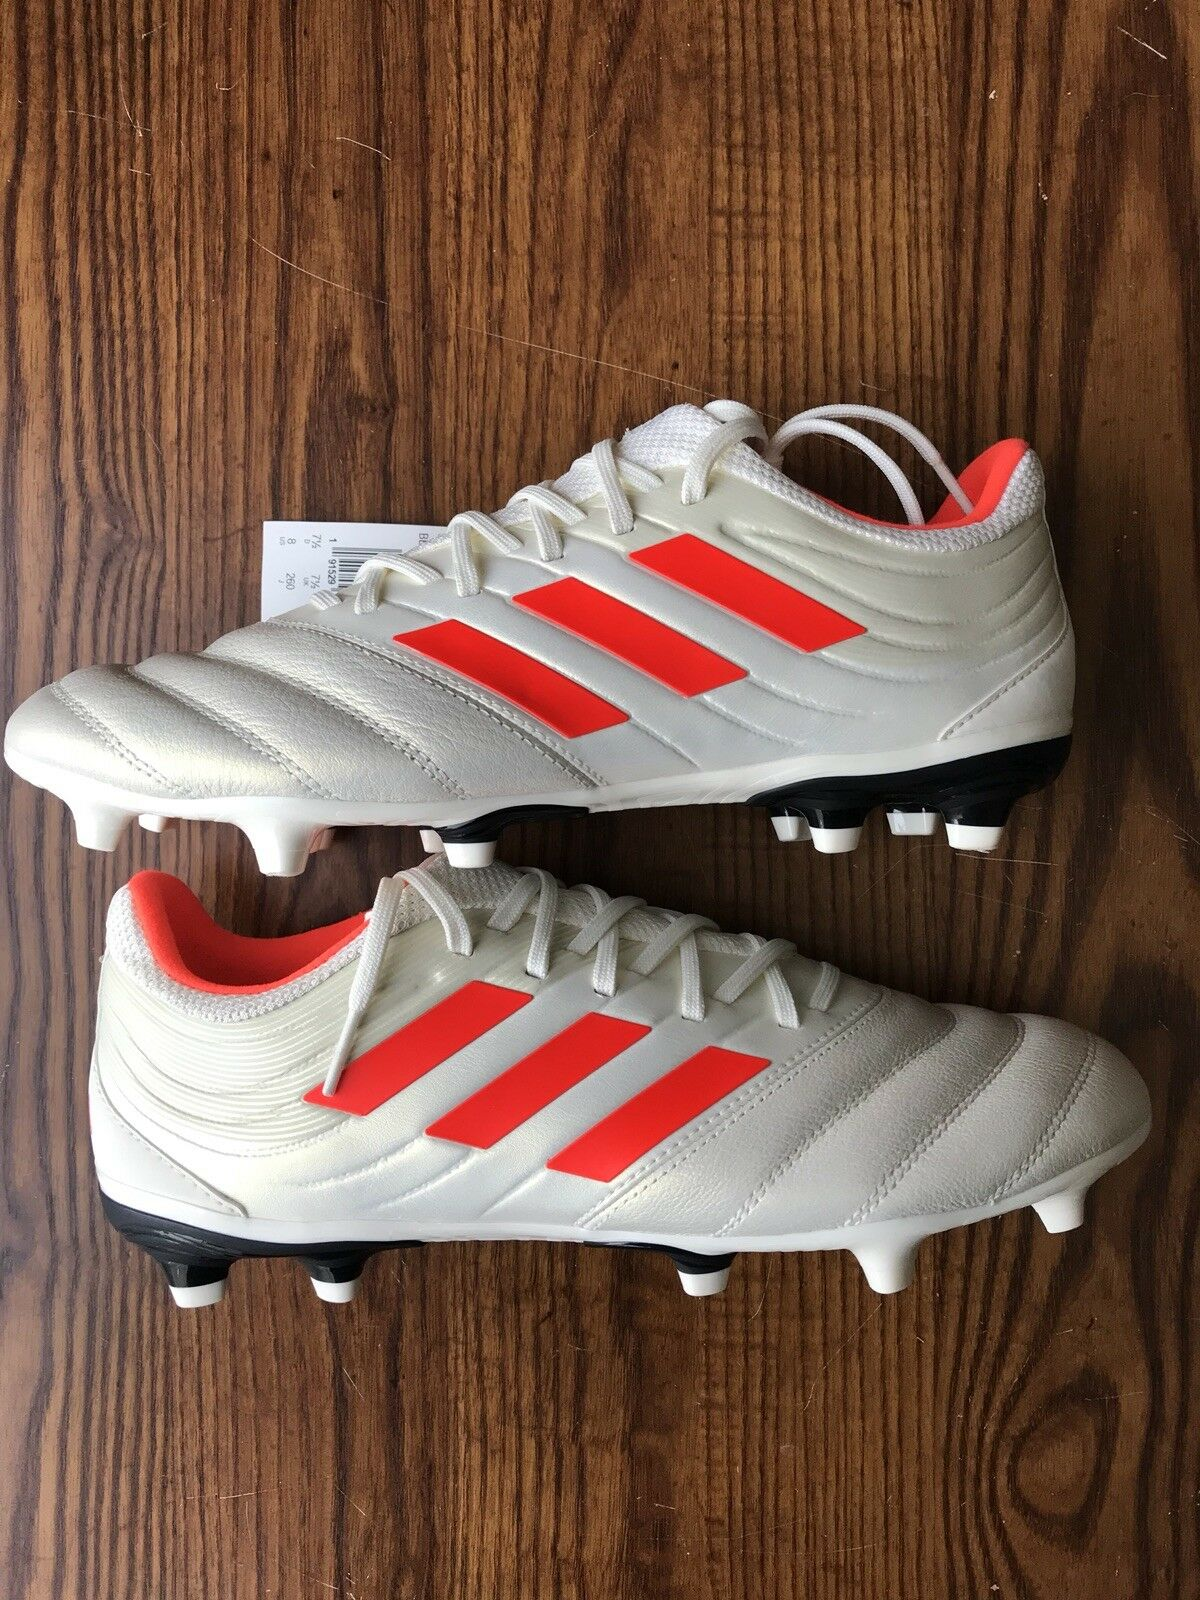 ff5655e57 Adidas Copa 19.3 FG Soccer Cleats Men s Size 8 Off-White Solar Red BB9187